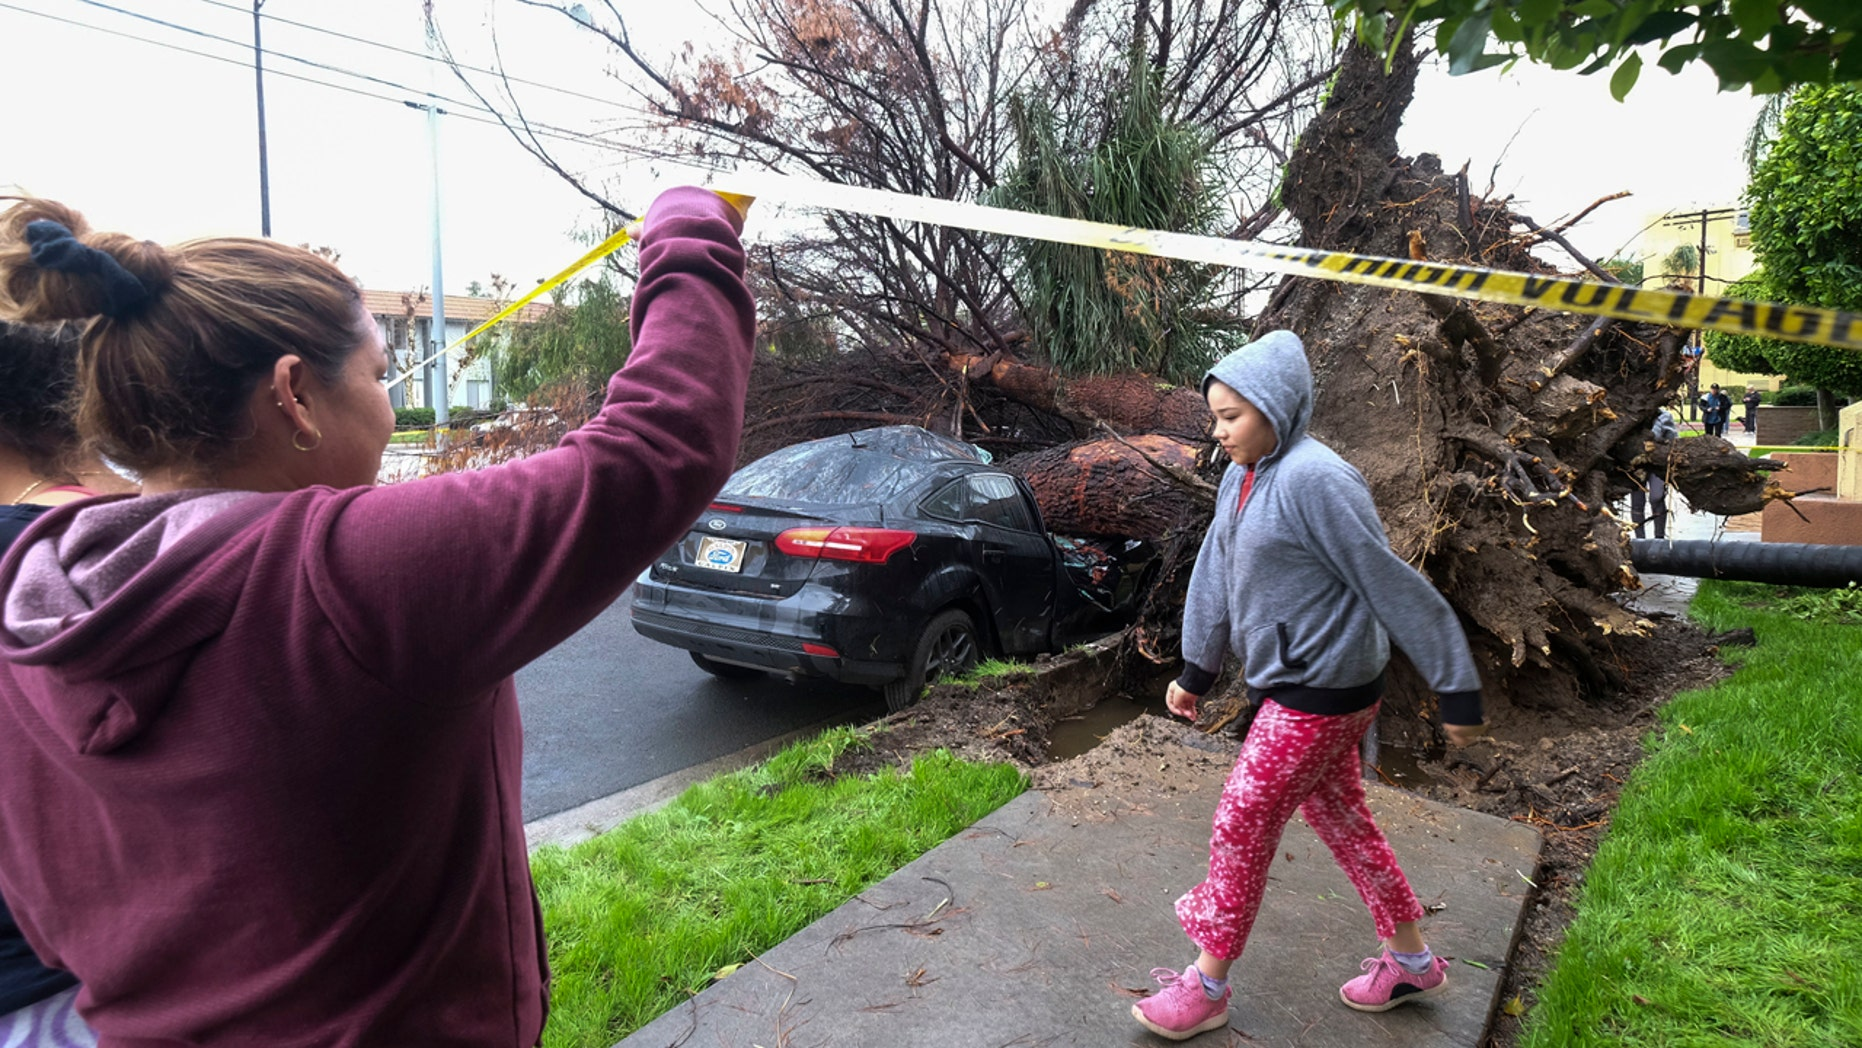 Feb. 18, 2017: Neighbors walk by a fallen tree that crushed a car in the Sherman Oaks section of Los Angeles.